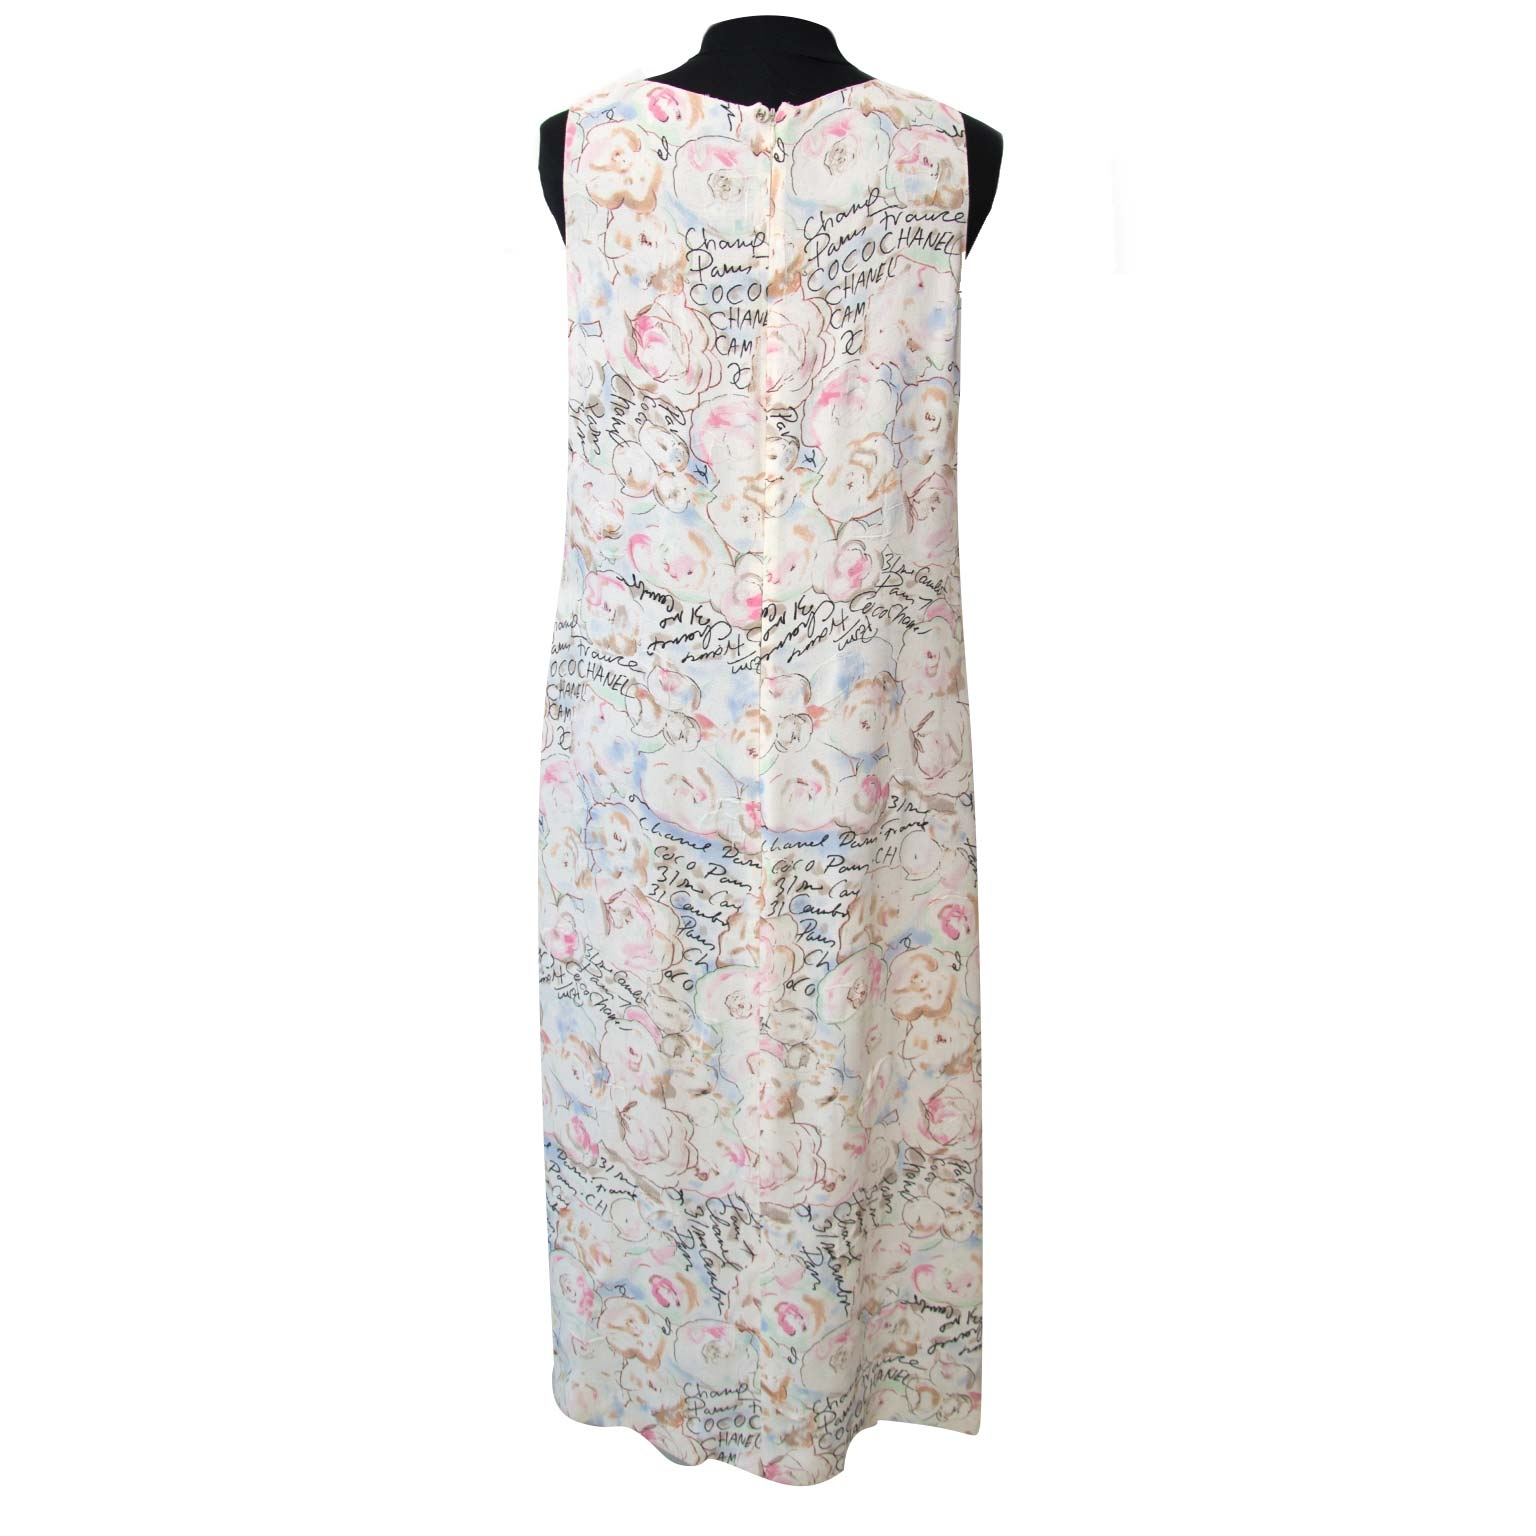 Chanel Pastels Floral Text Dress - Size 40  Buy authentic designer Chanel secondhand clothes at Labellov at the best price. Safe and secure shopping. Koop tweedehands authentieke Chanel kleding bij designer webwinkel labellov.